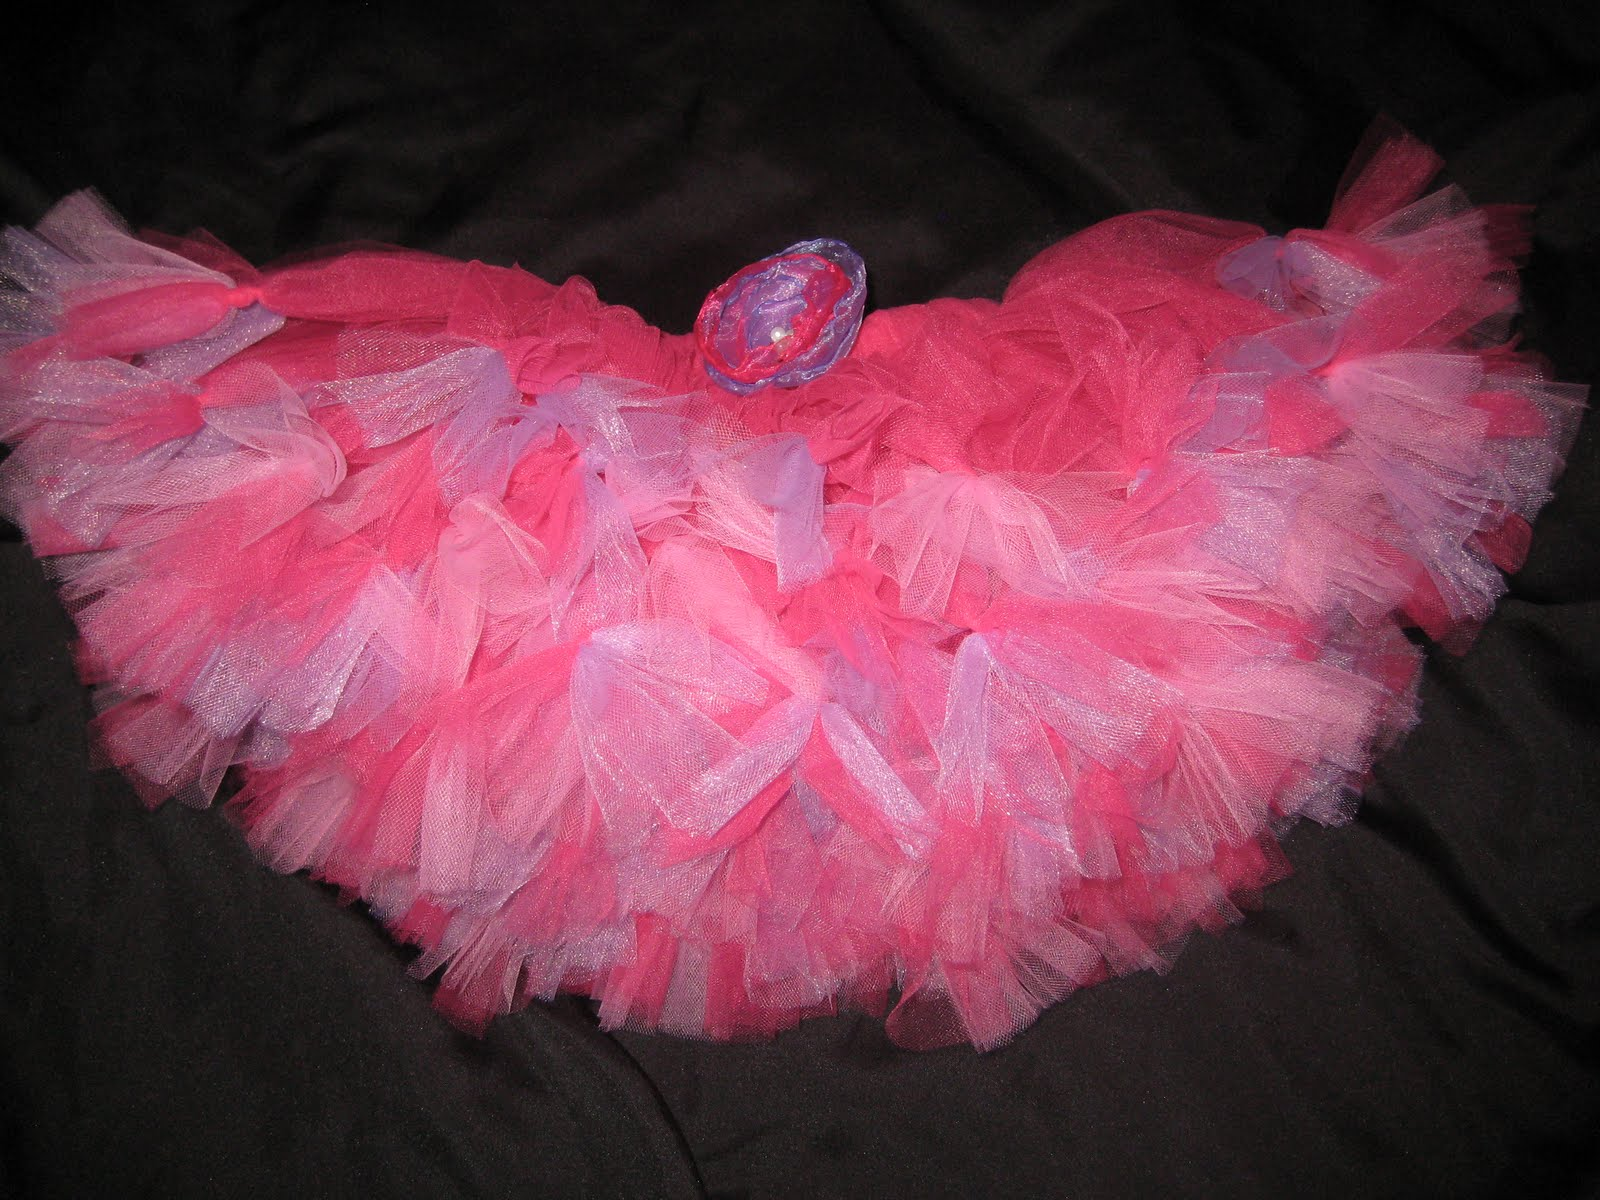 640edccfab6 Skirt is made of soft white tulle with fuschia